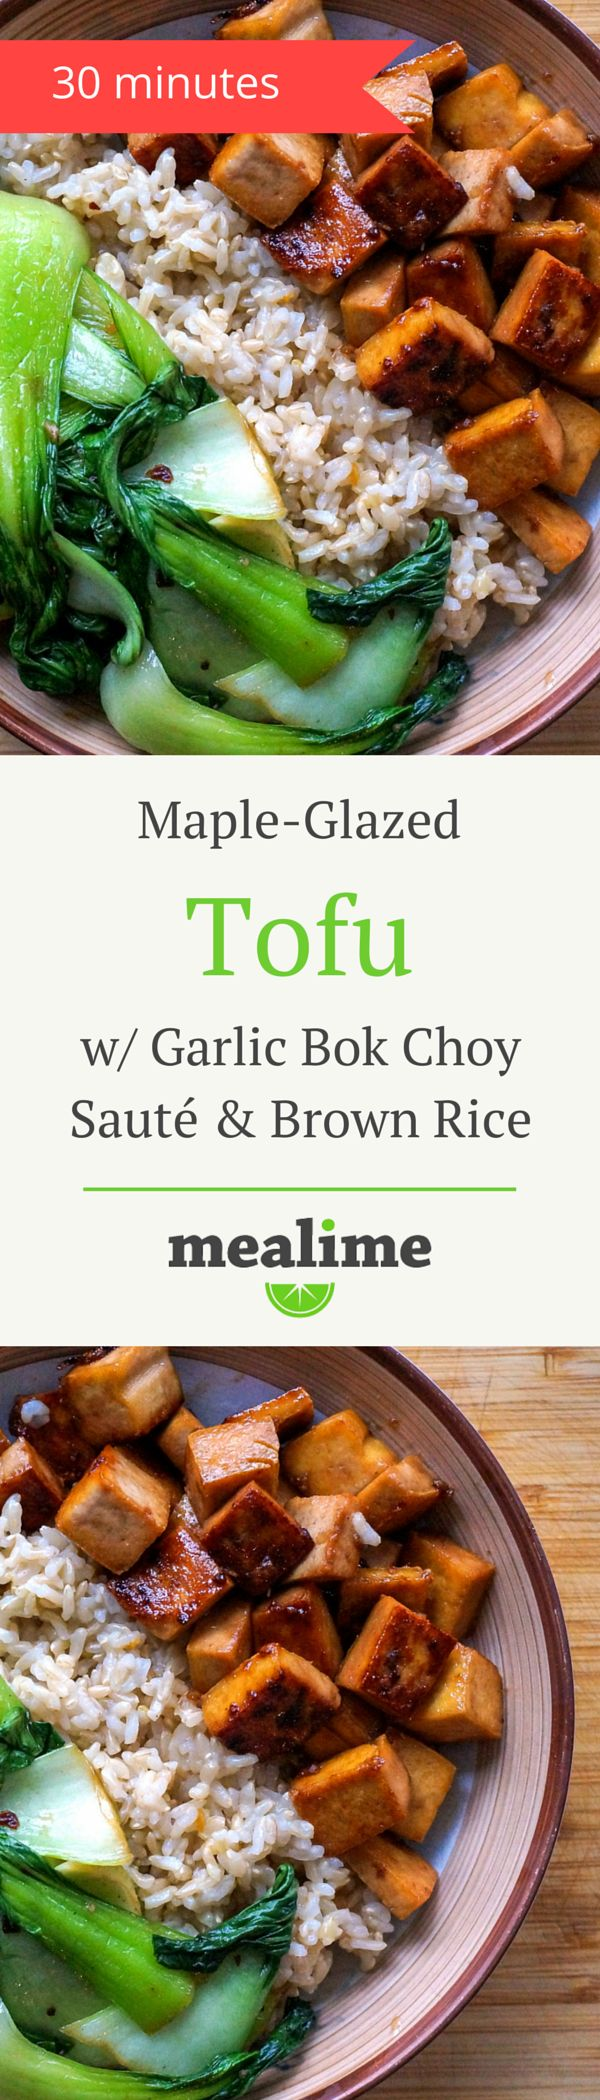 Maple Glazed Tofu with Garlic Bok Choy Sauté & Brown Rice - a quick and healthy Mealime recipe for one or two. Flexitarian, pescetarian, vegetarian, dairy free, fish free, peanut free, shellfish free, and tree nut free. #mealplanning